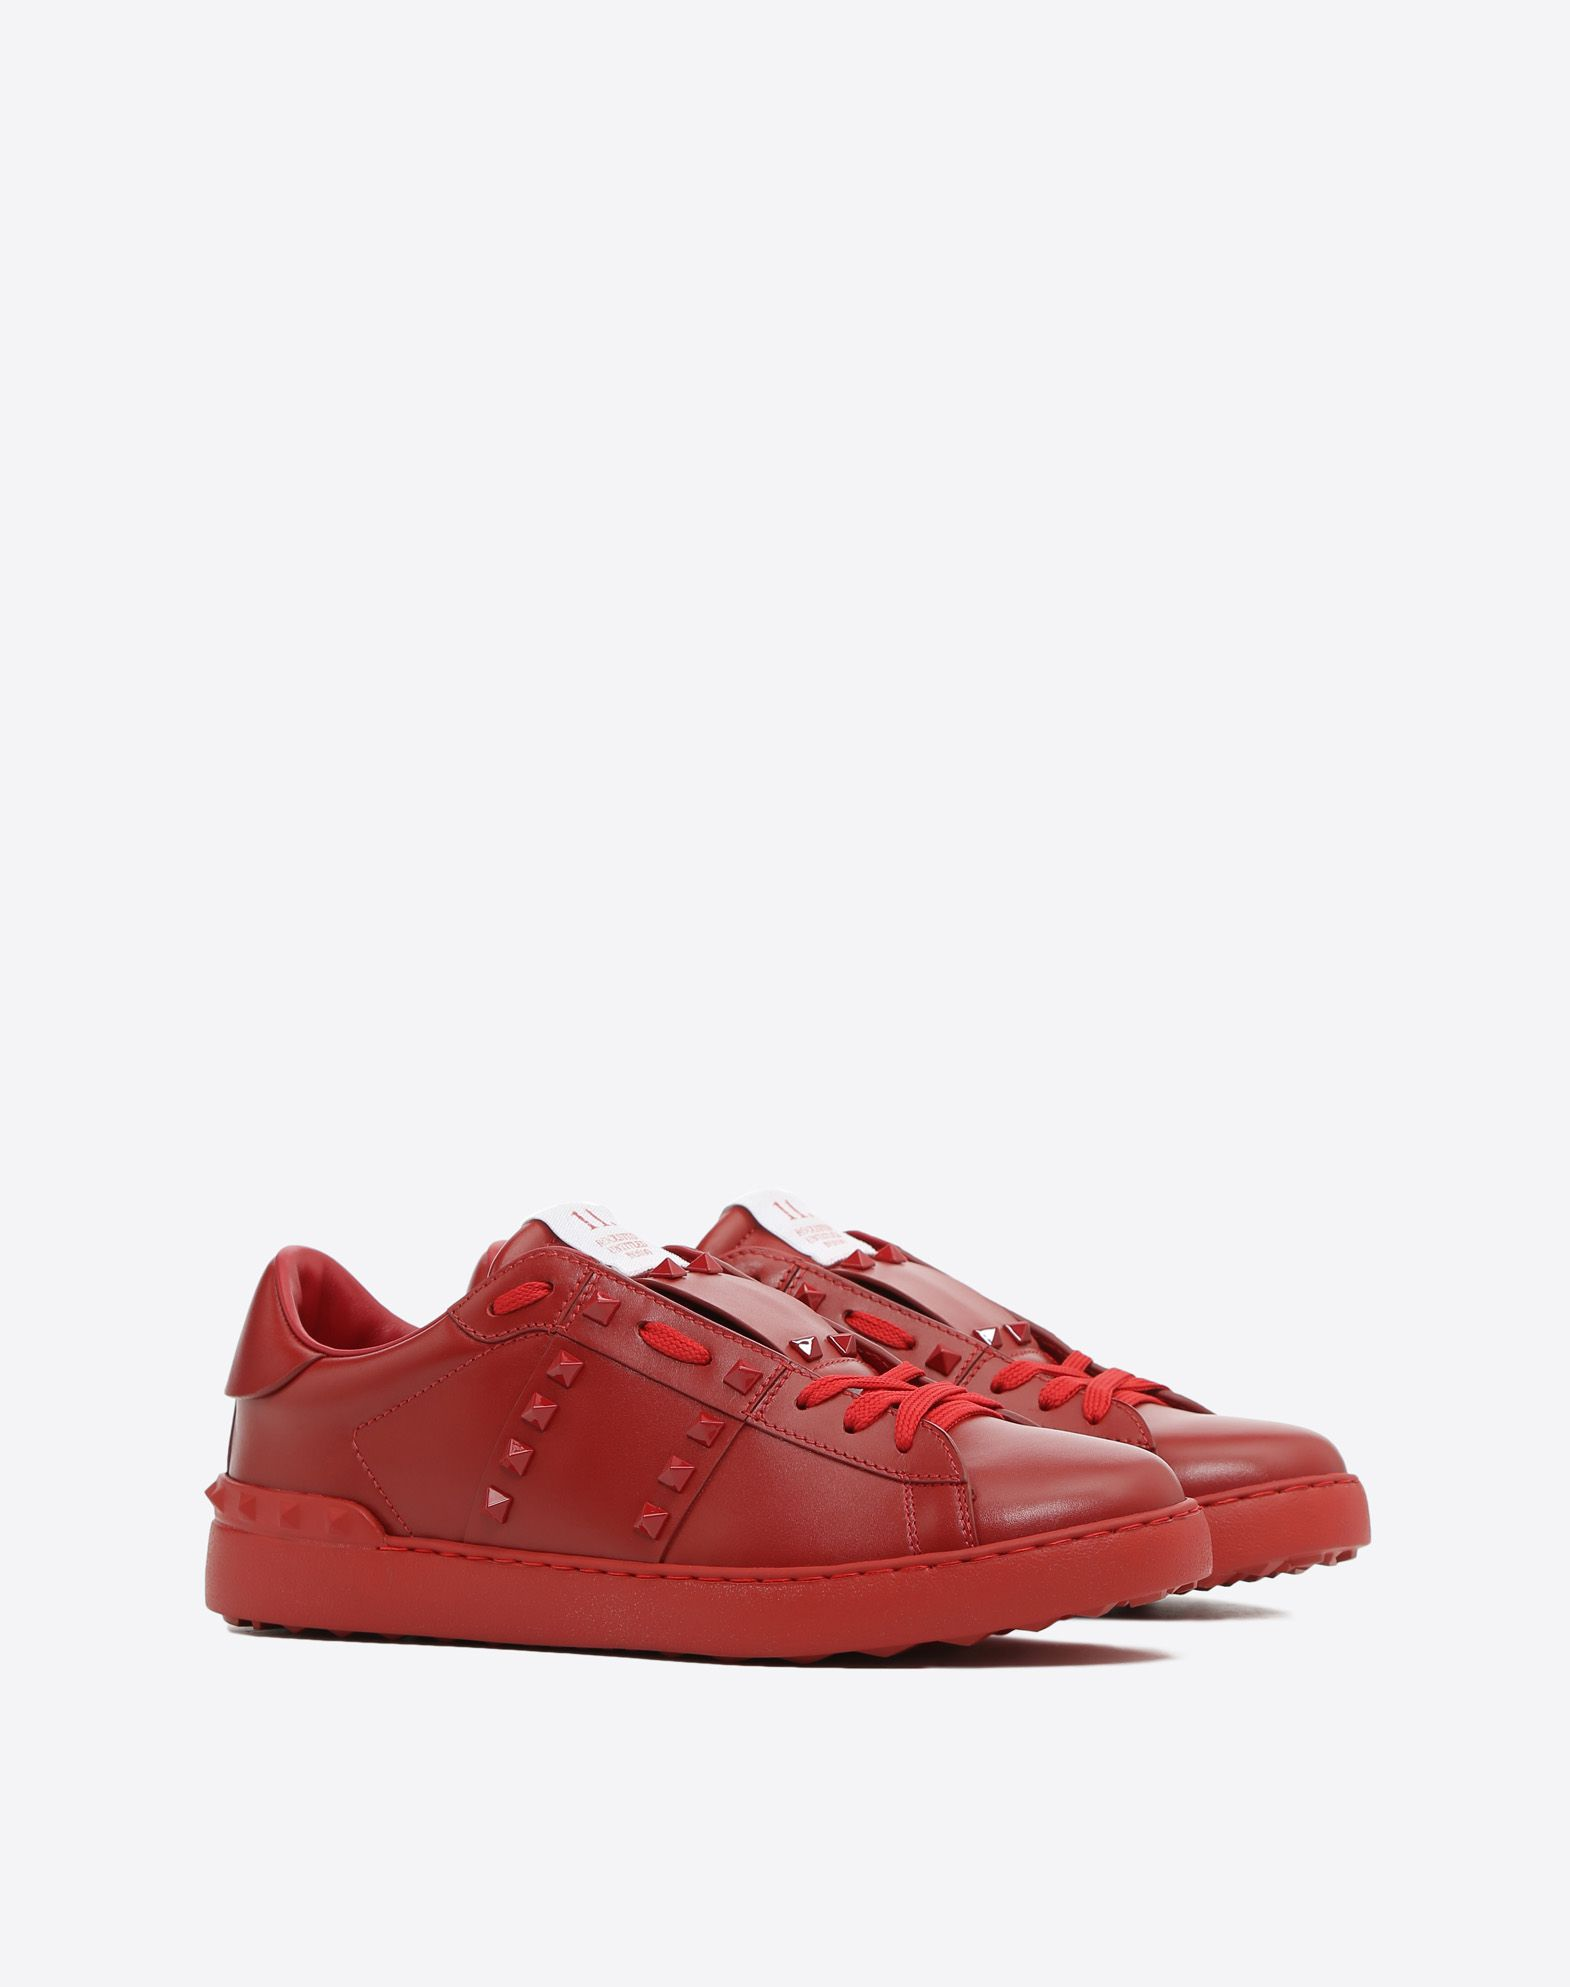 VALENTINO GARAVANI UOMO Sneakers Rockstud Untitled Rosso LOW-TOP SNEAKERS U r